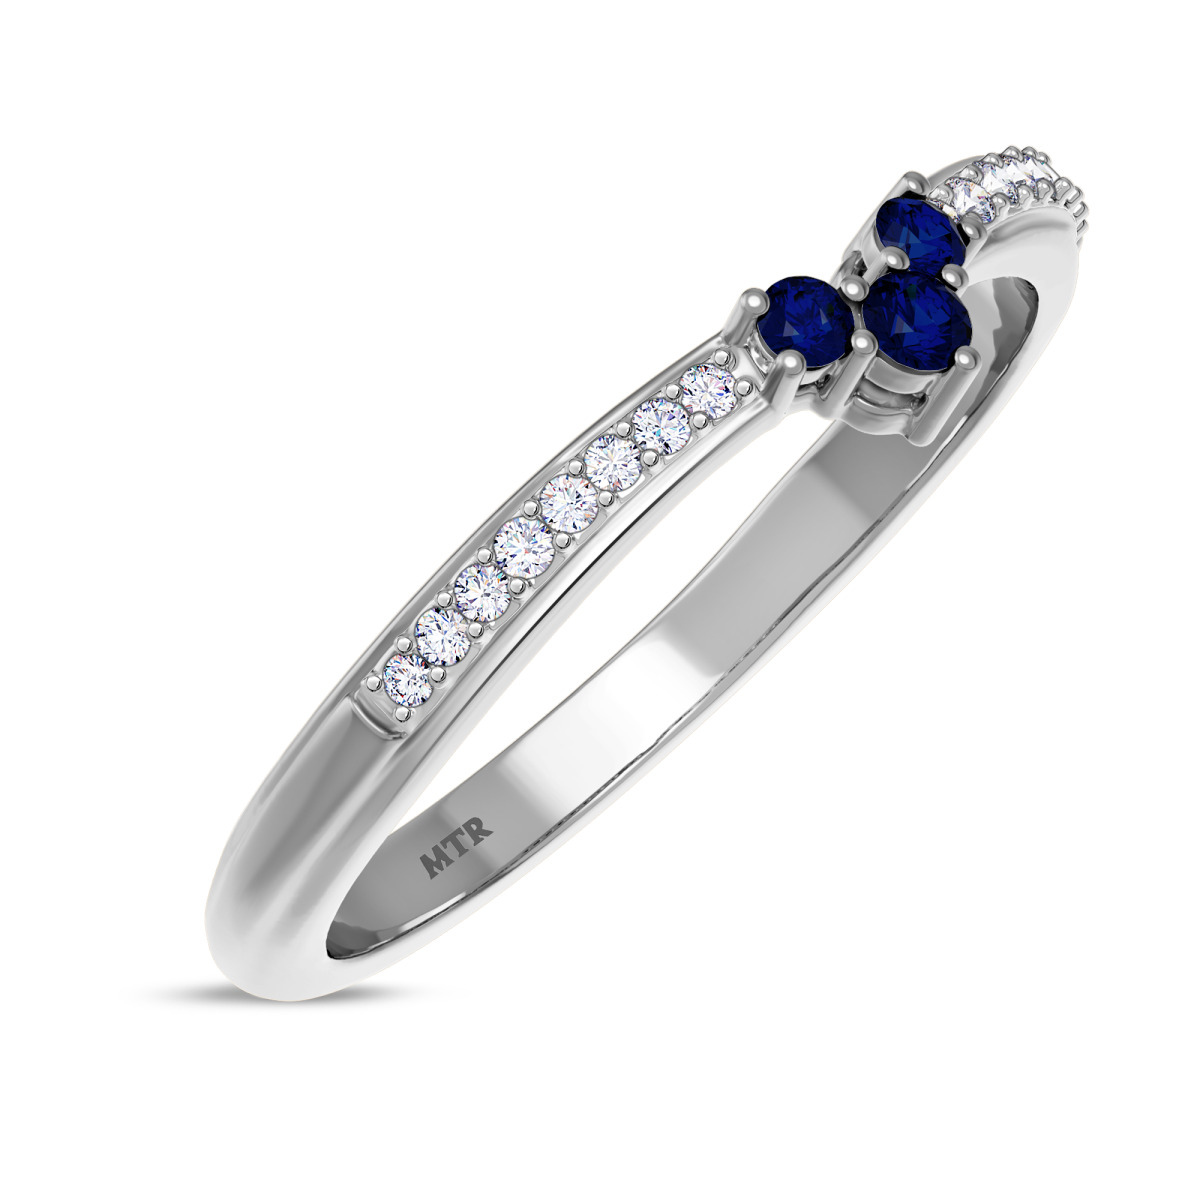 1/6 Carat T.W. Sapphire Ladies Wedding Band  10K White Gold